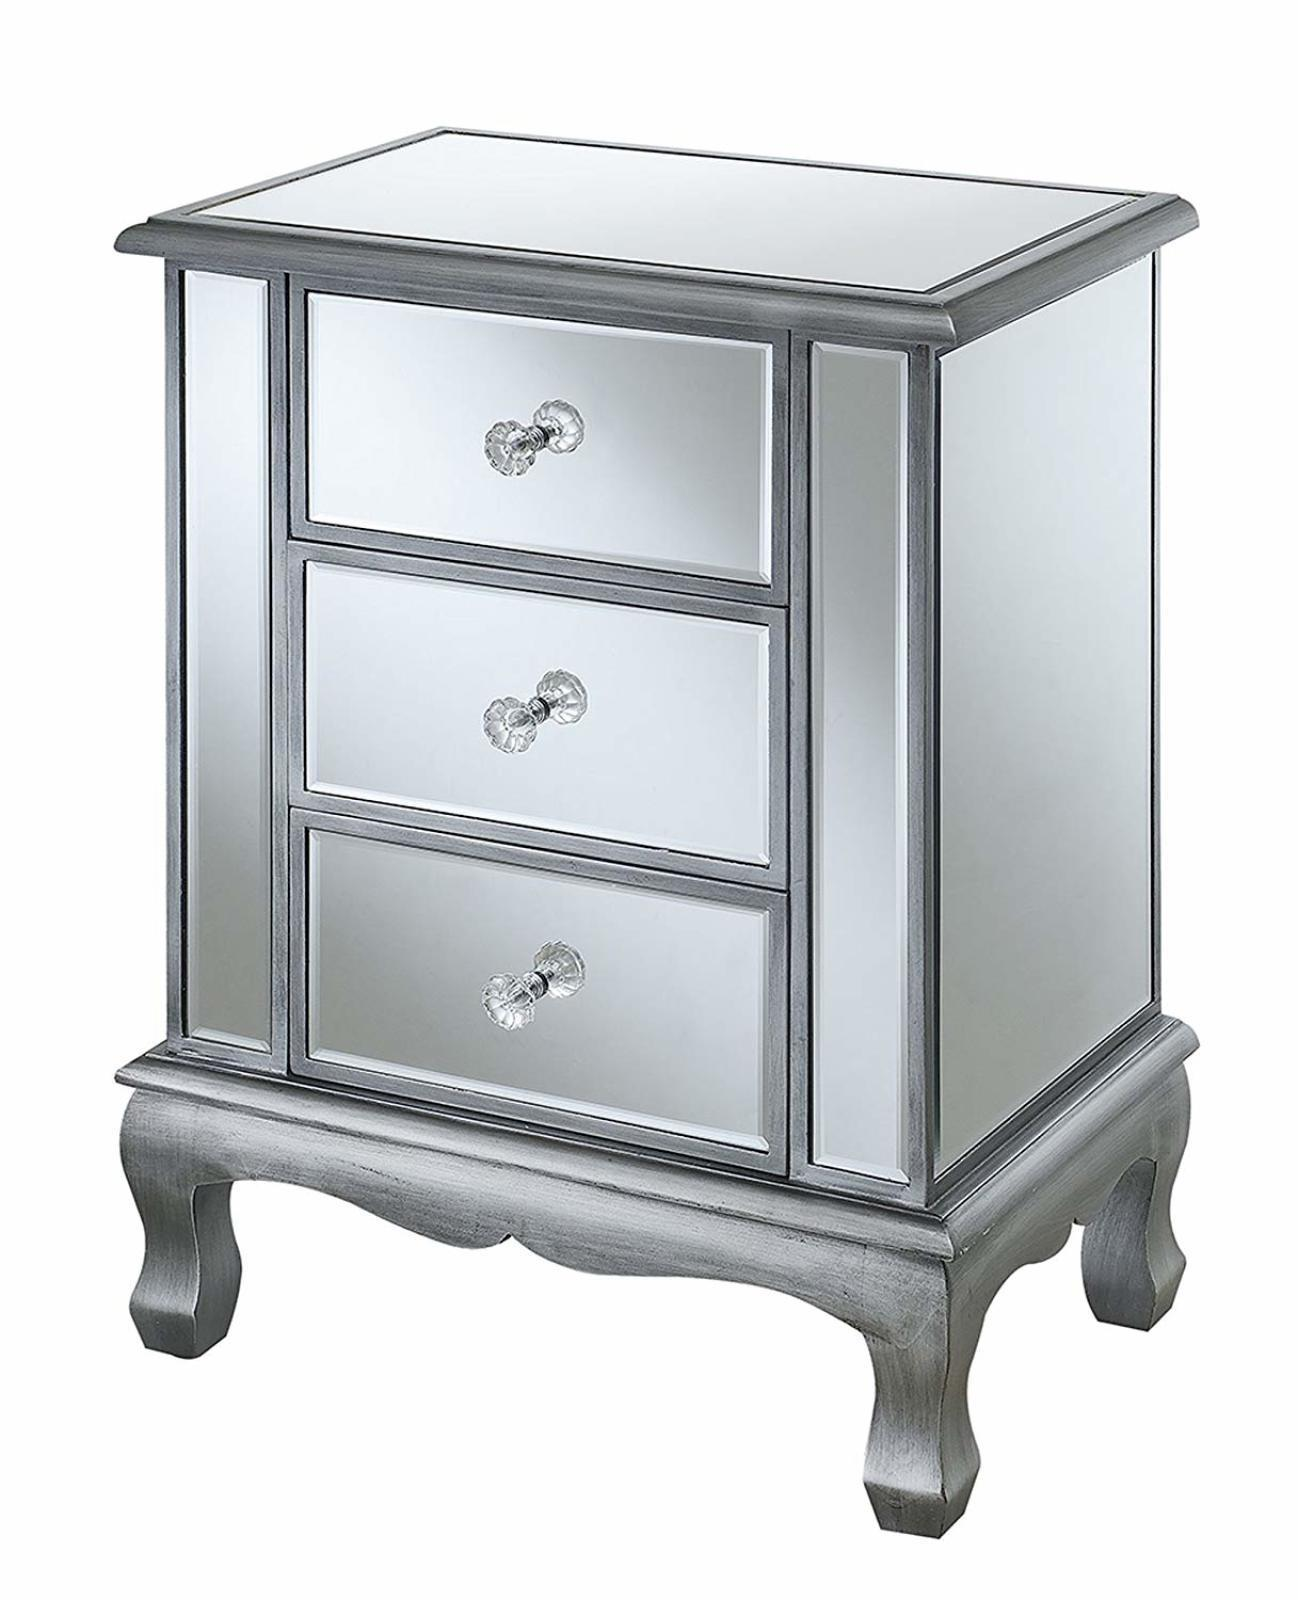 drawer mirrored accent table nightstand chest dresser storage tables and chests mirror decor sil under office cabinets hampton bay patio furniture nautical sconces indoor post